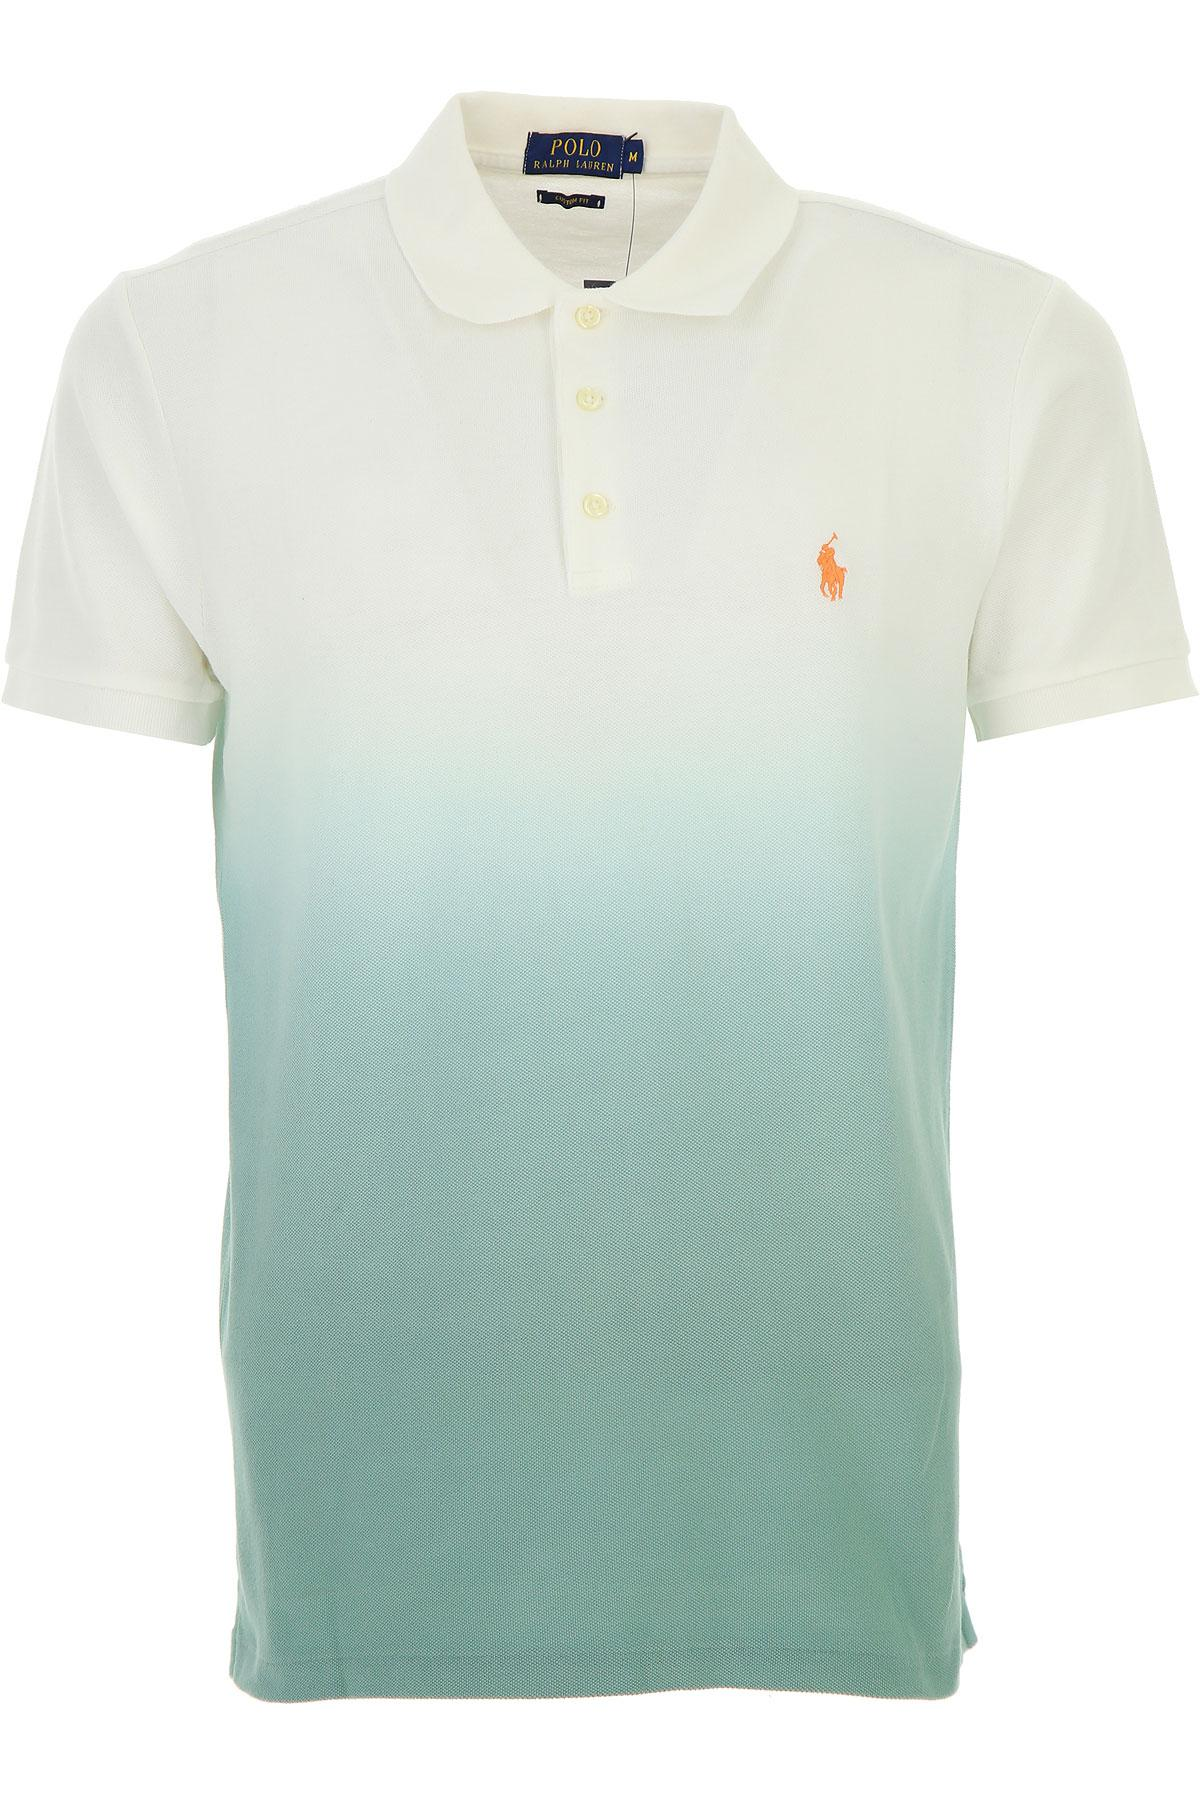 Ralph For Shirt Sale White Outlet On In Lauren Men Polo Ib76fYymvg